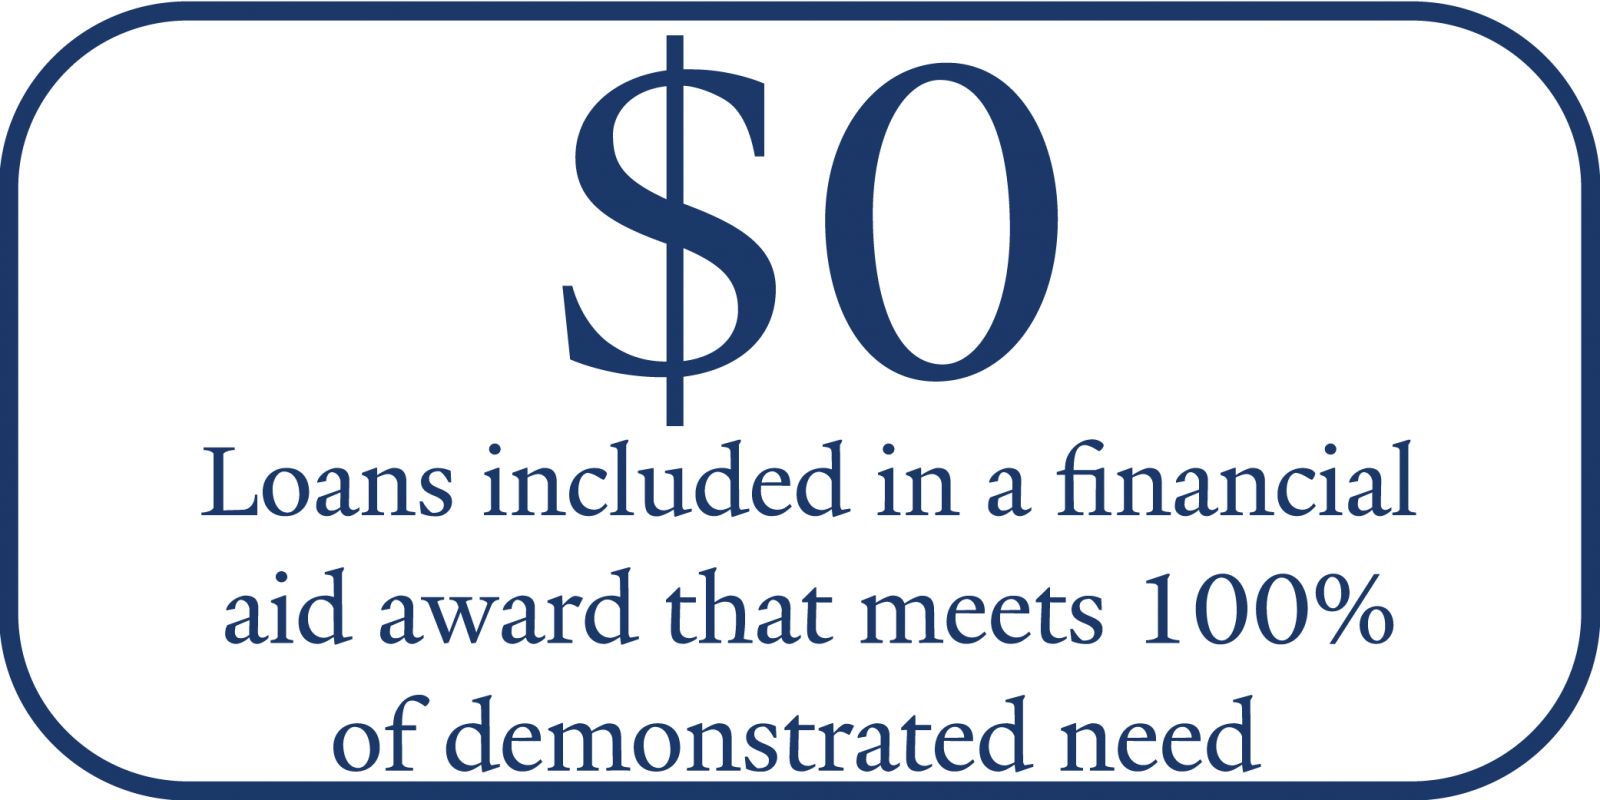 Loans included in a financial aid award that meets 100% of demonstrated need = $0